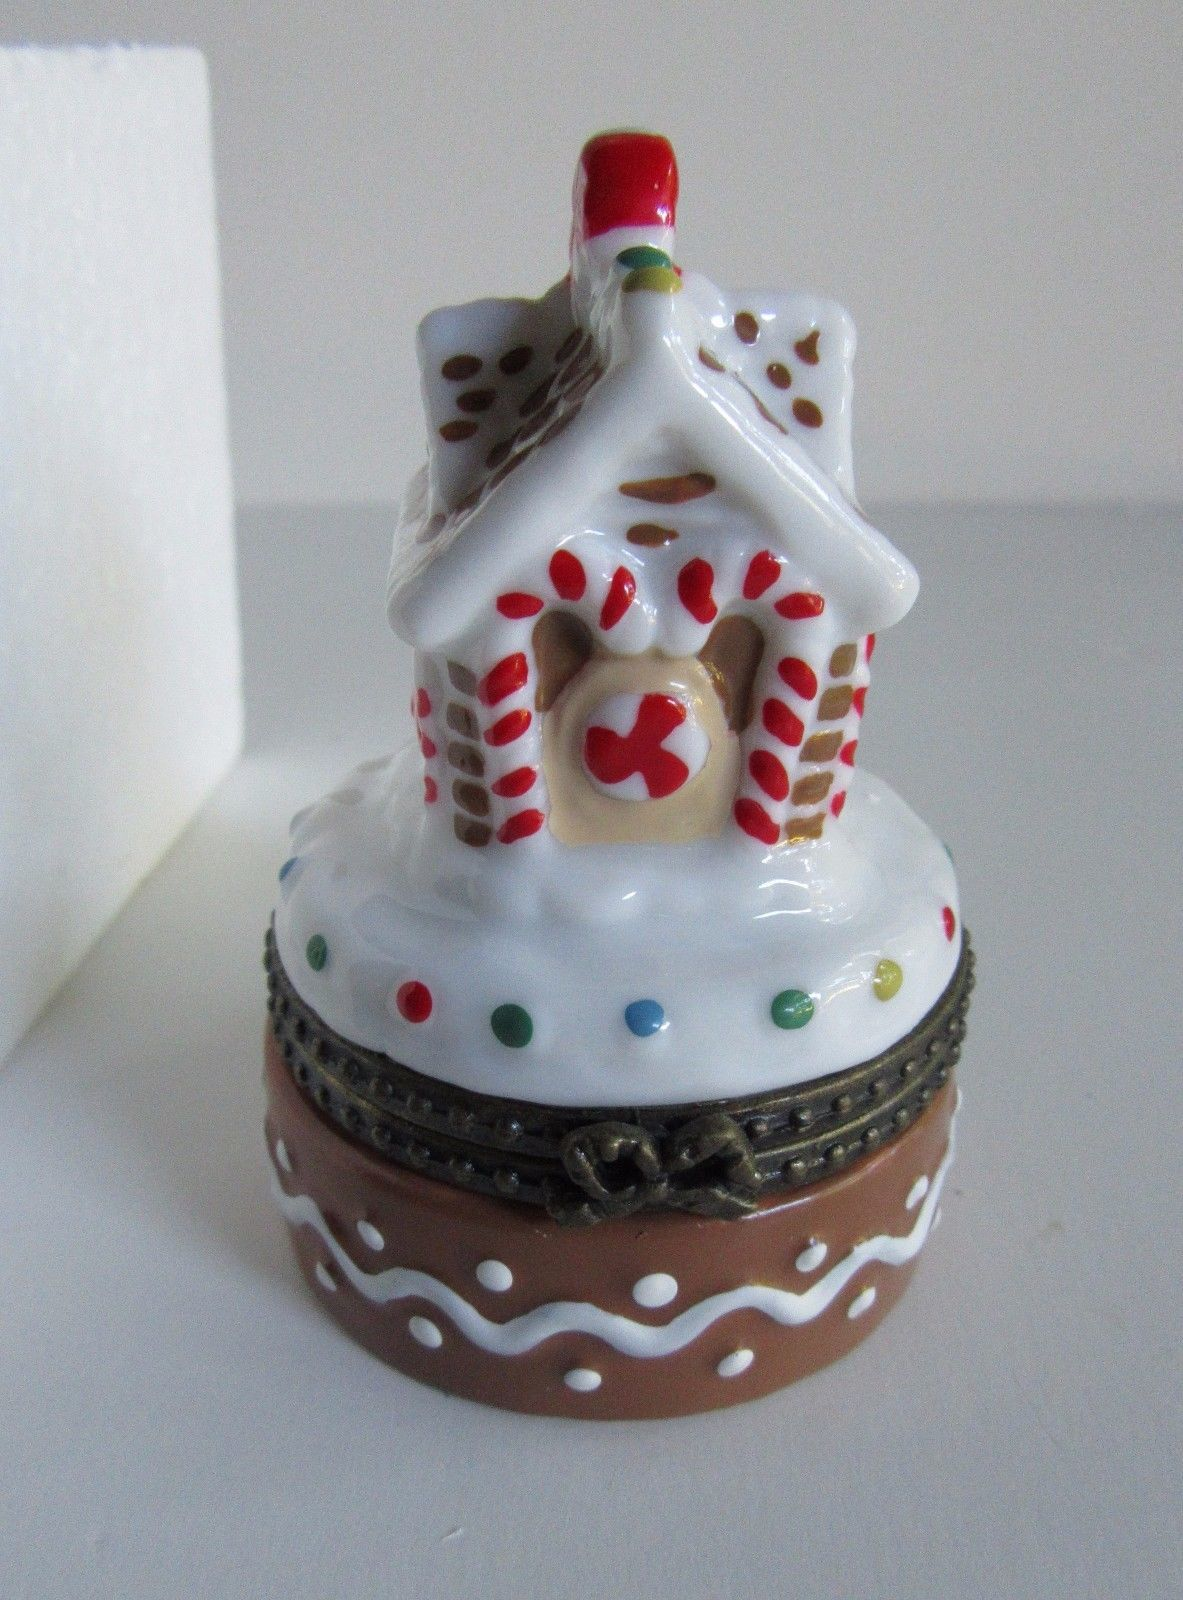 Primary image for Avon Gingerbread House Porcelain Trinket Box and Tiny Gingerbread Man 1997 New